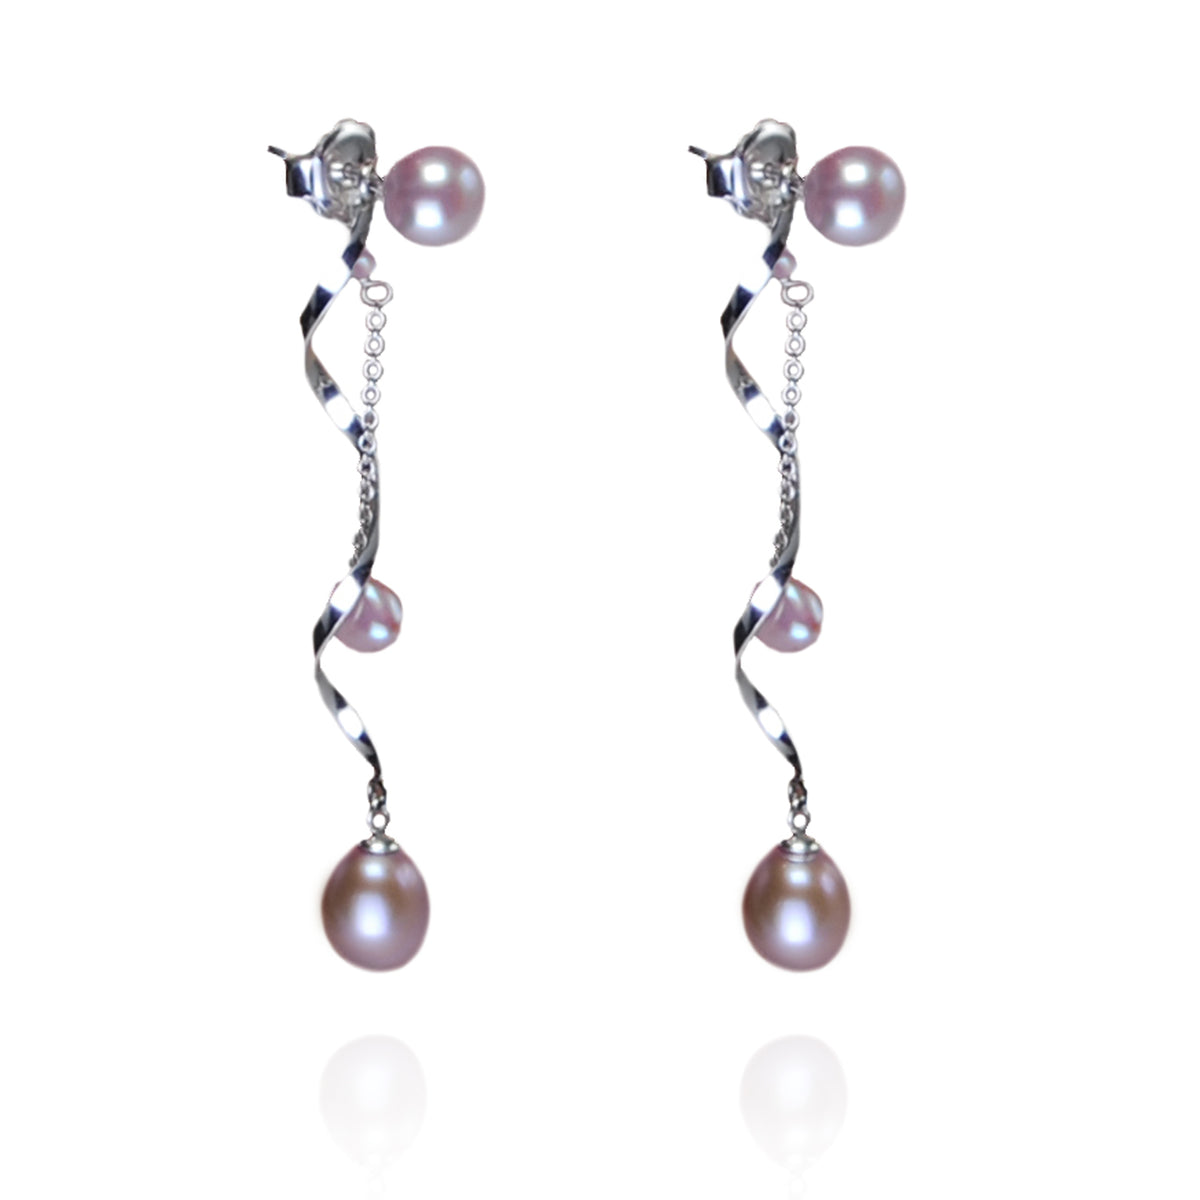 Freshwater Pearl earrings with optional long Silver Swirl & Chain Pearl Drop in Pink